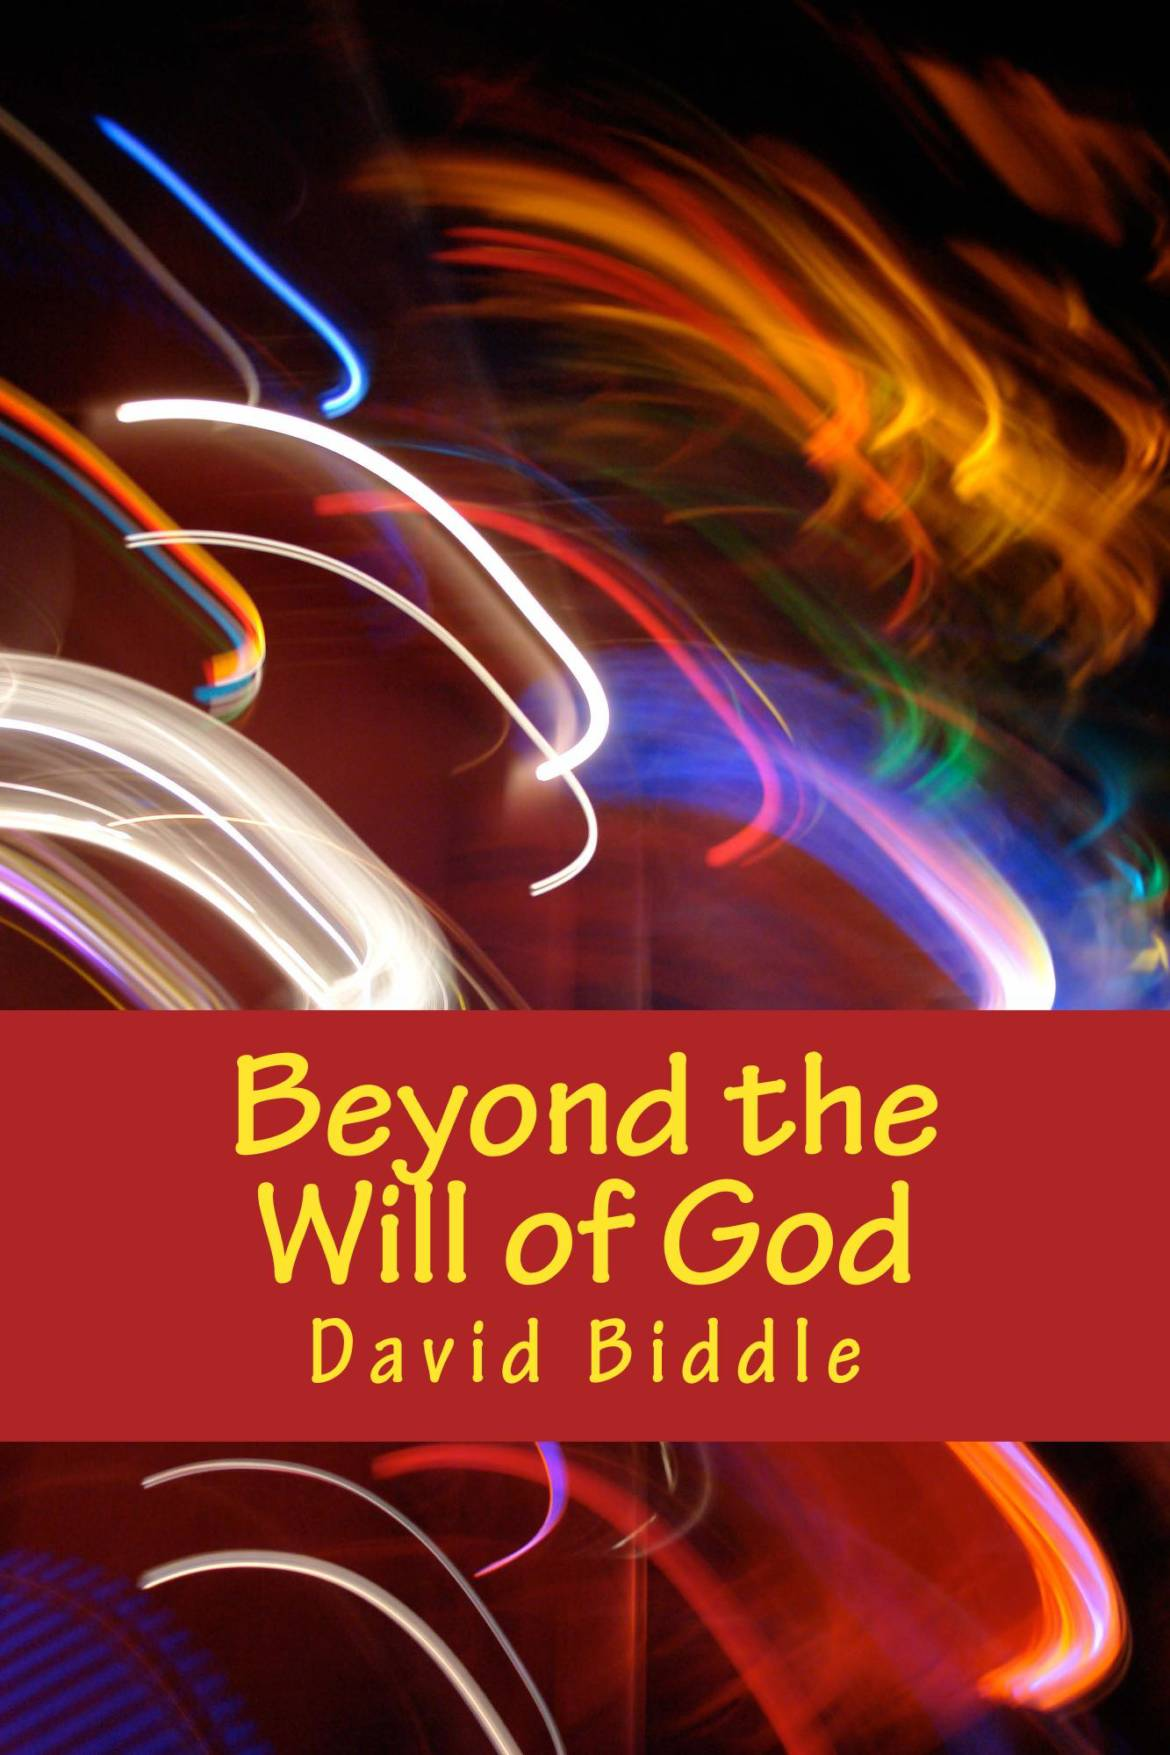 beyond_the_will_of_g_cover_for_kindle1.jpg